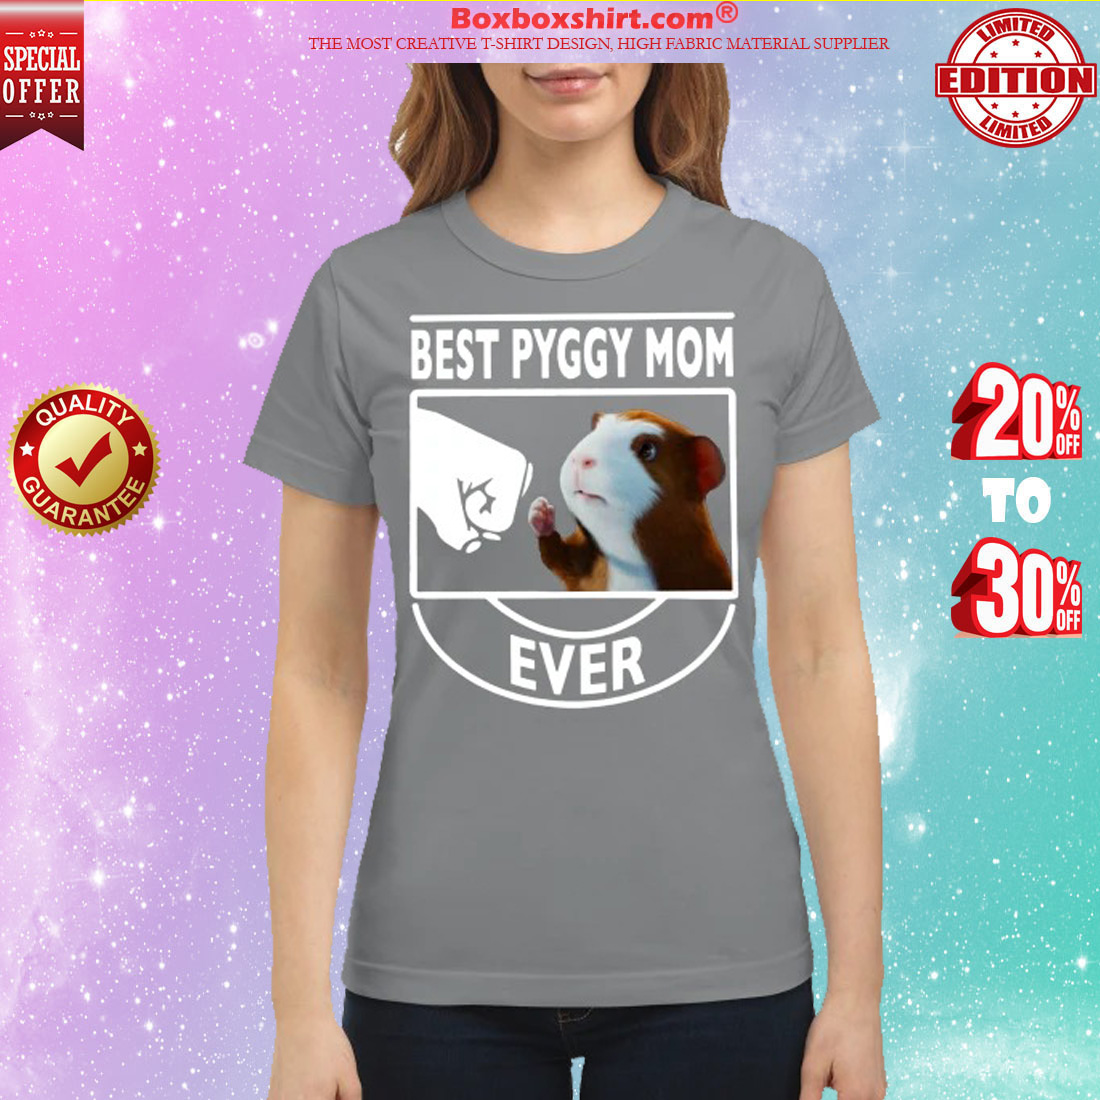 Best Pyggy mom ever classic shirt